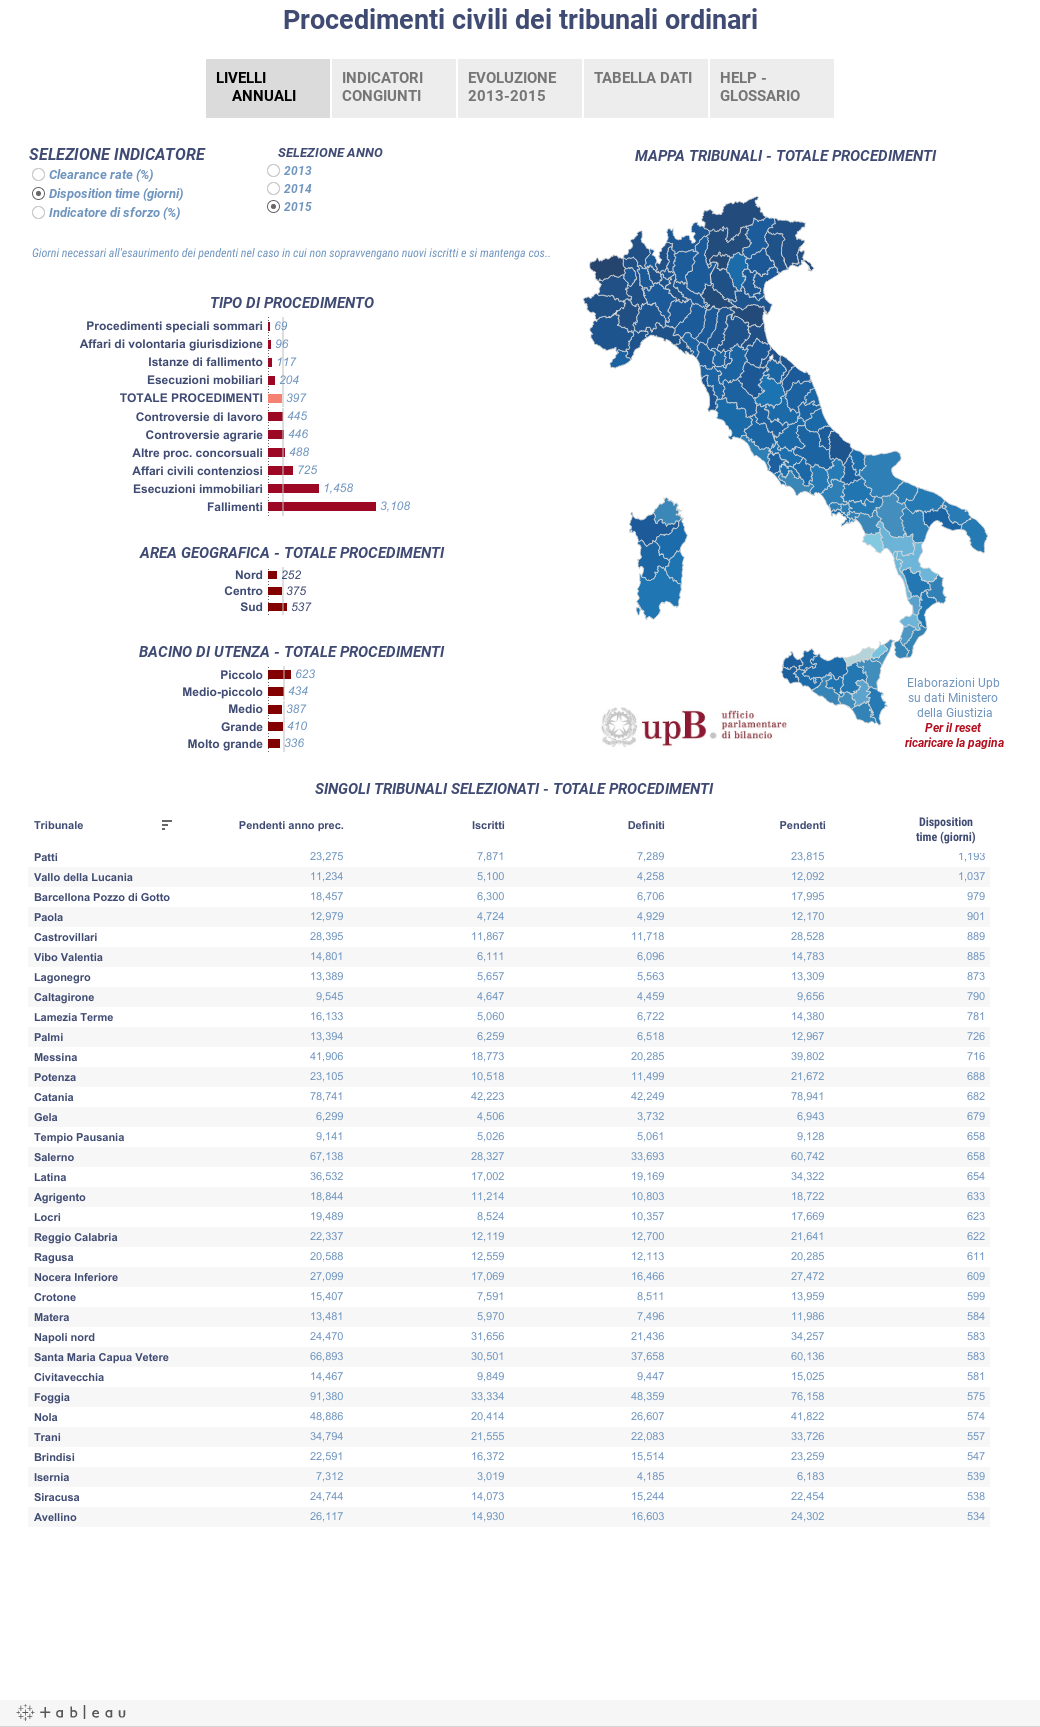 Movimento dei procedimenti civili dei tribunali ordinari in Italia